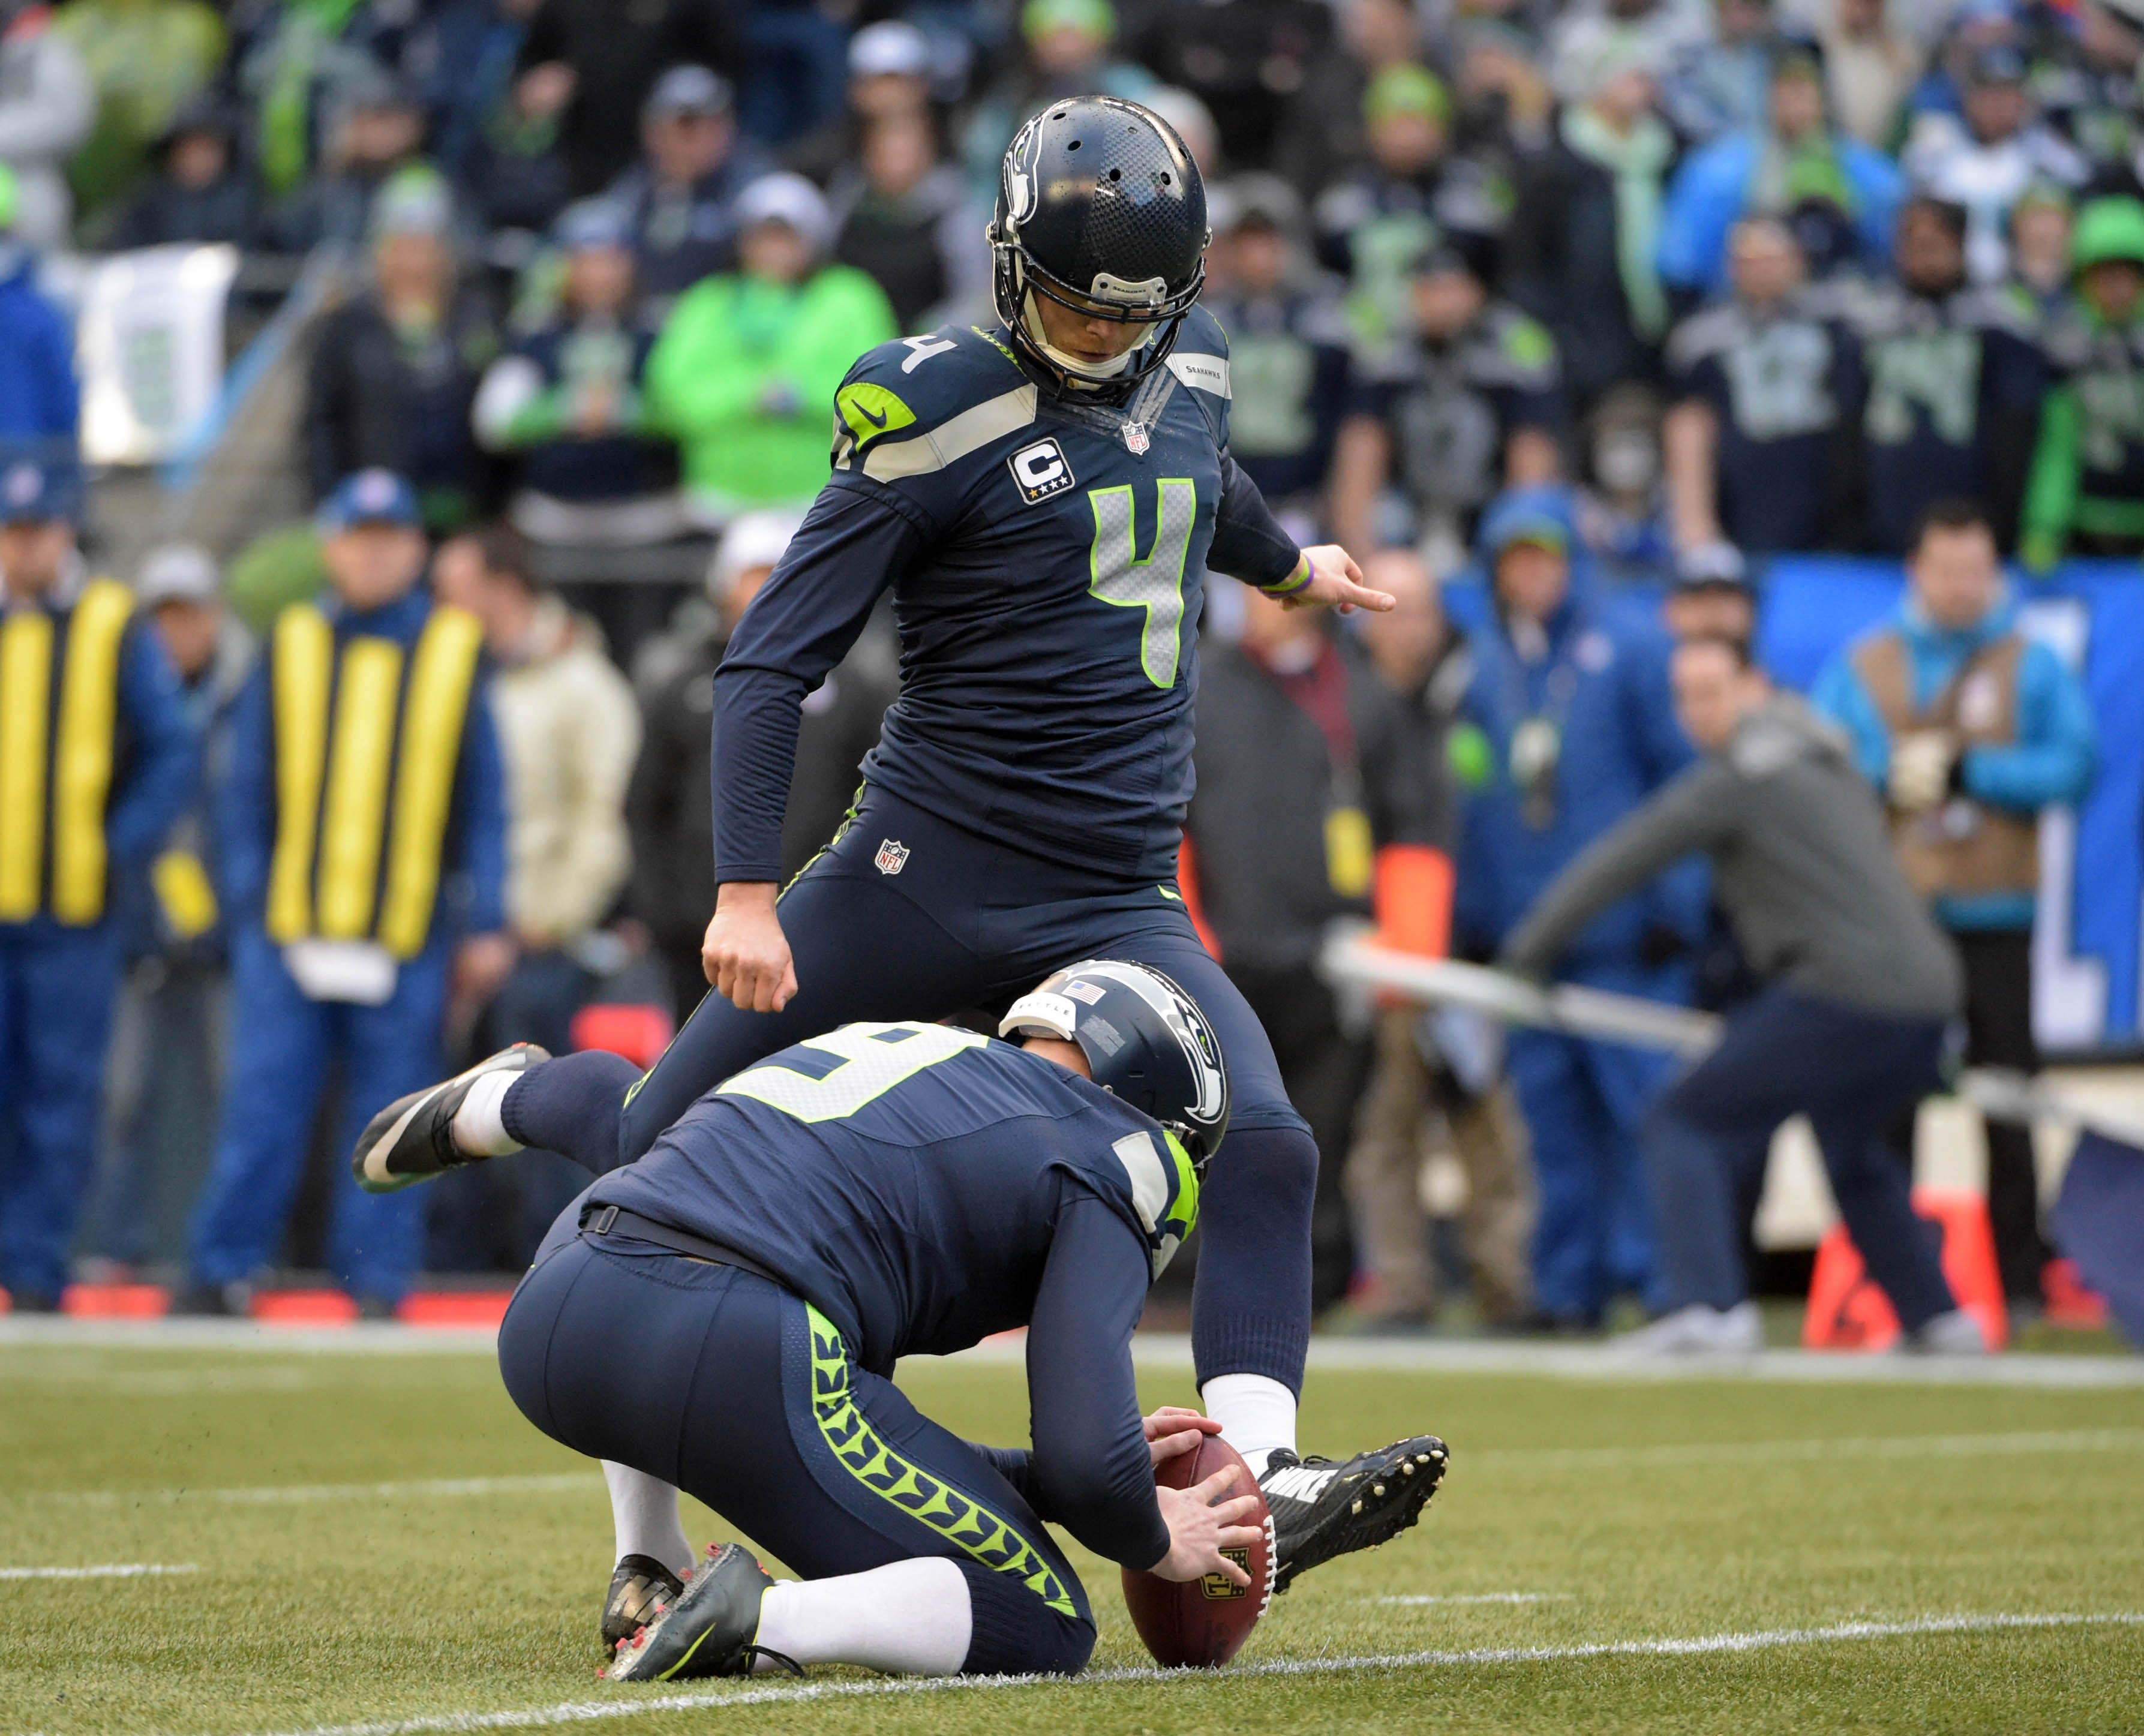 NFL extra point changes could come in May